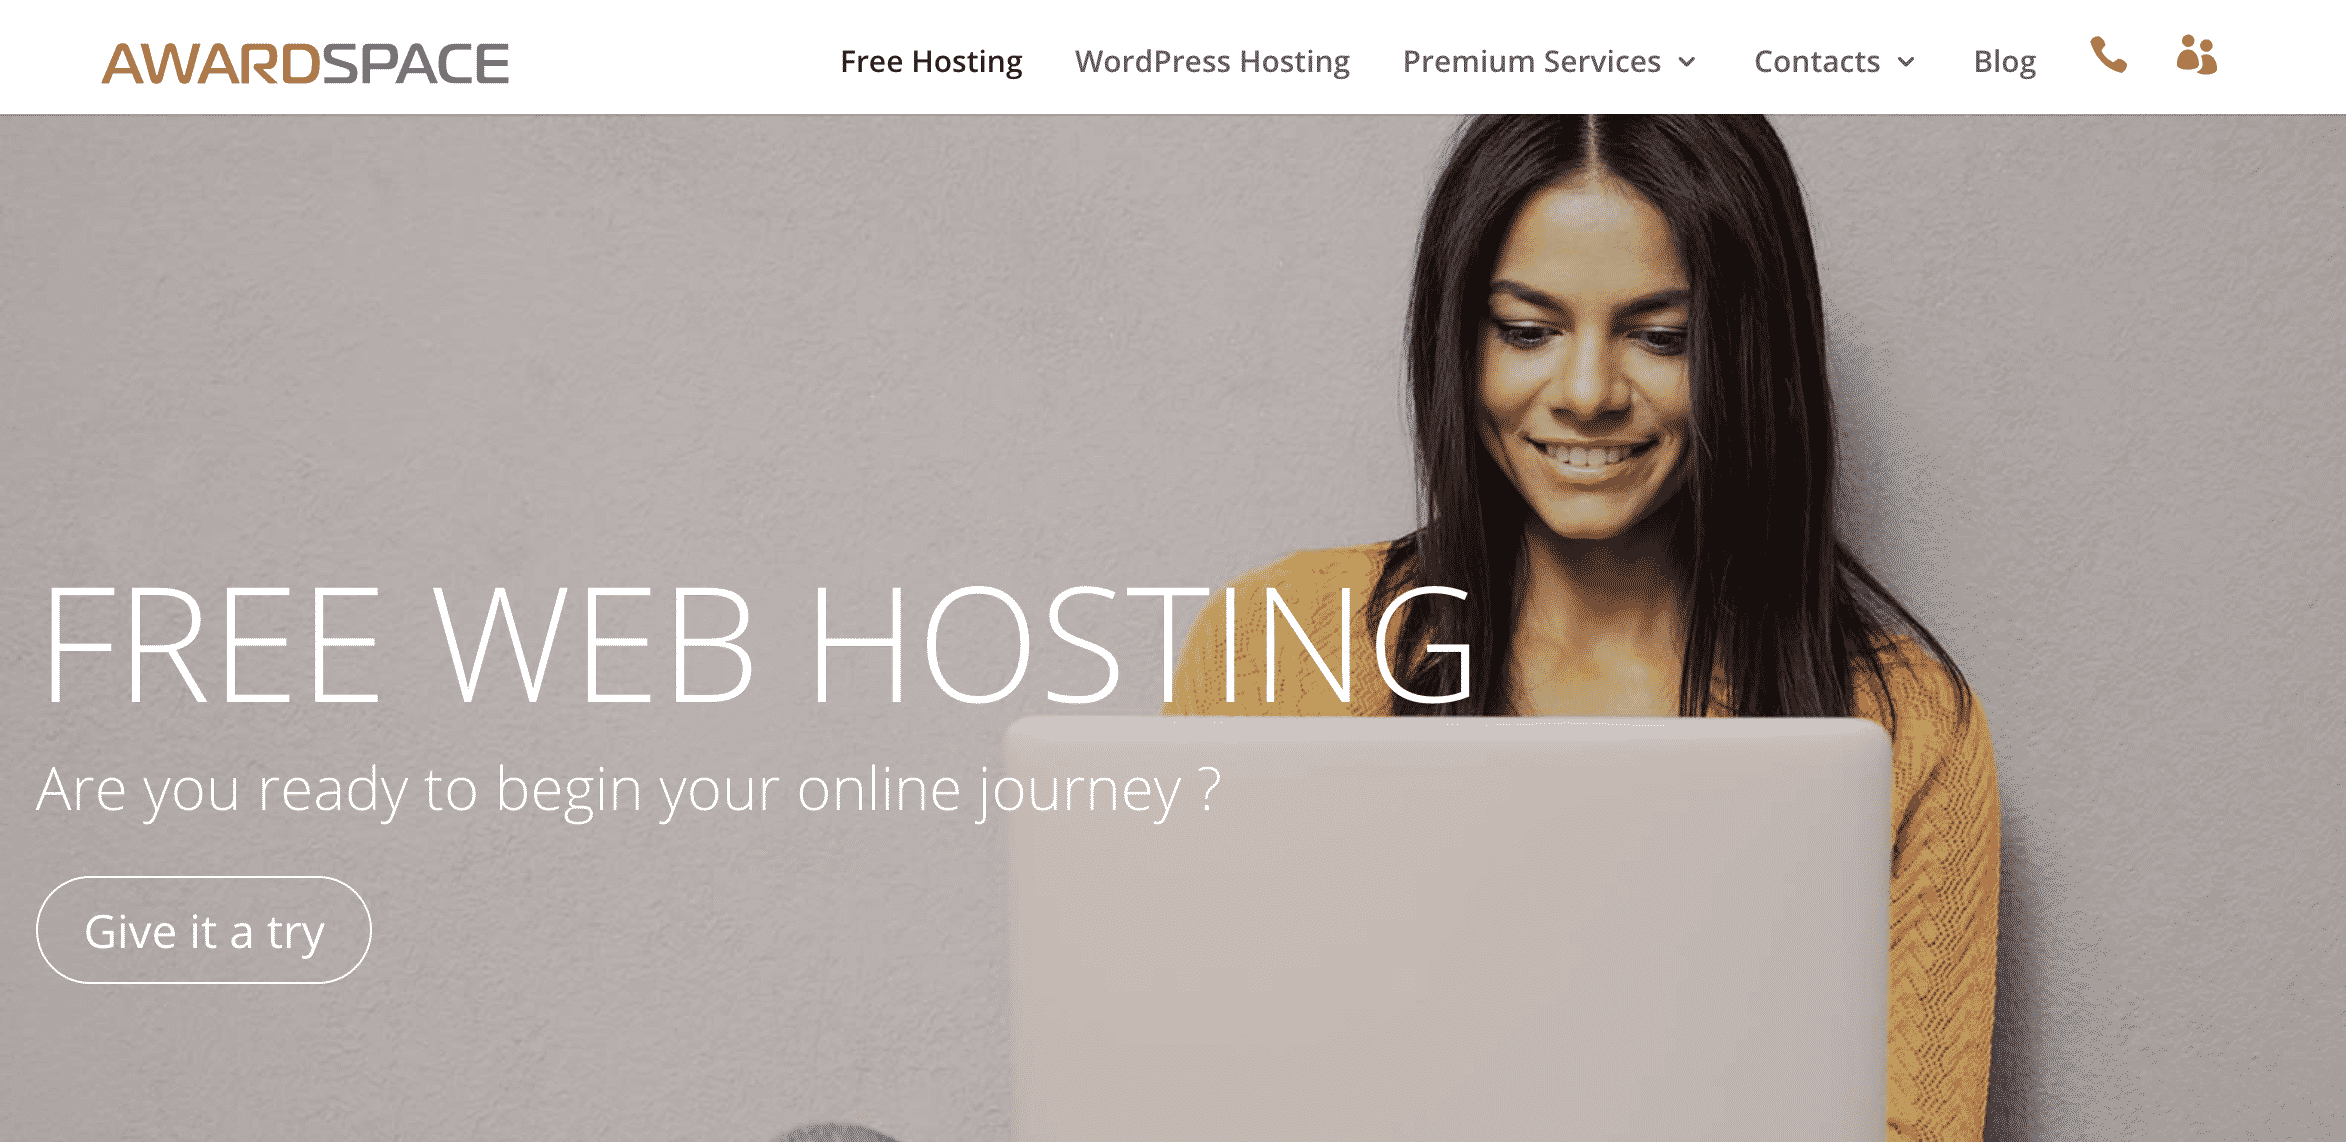 Award Space Free Website Hosting